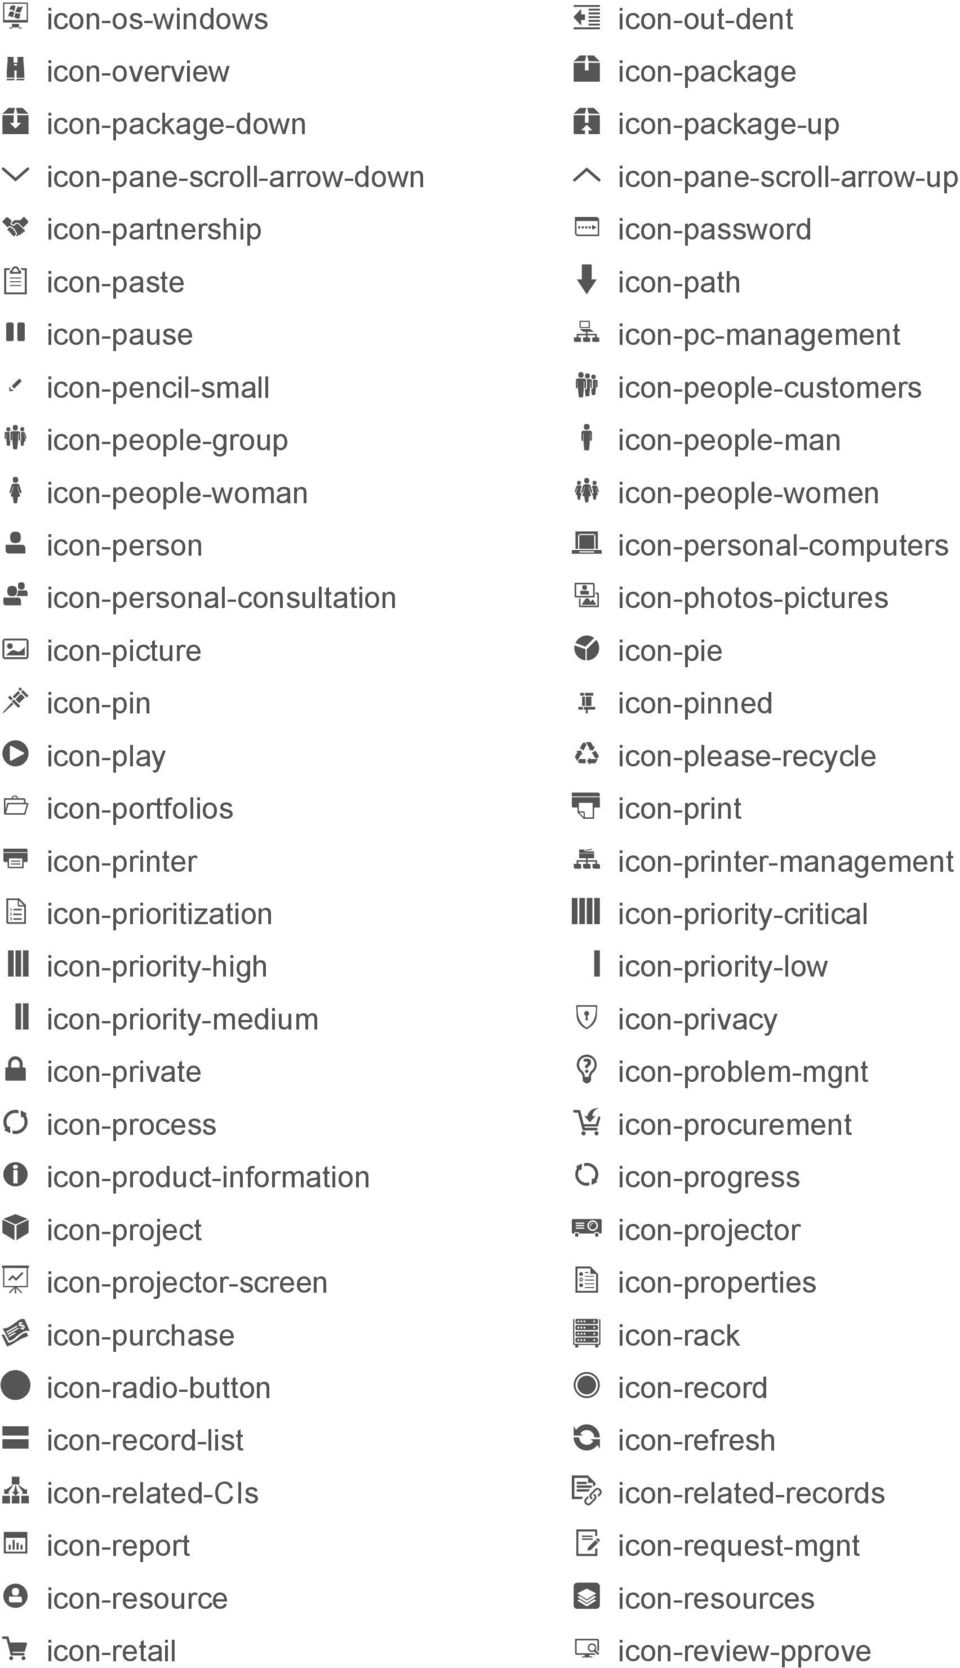 icon-project icon-projector-screen icon-purchase icon-radio-button icon-record-list icon-related-cis icon-report icon-resource icon-retail icon-out-dent icon-package icon-package-up